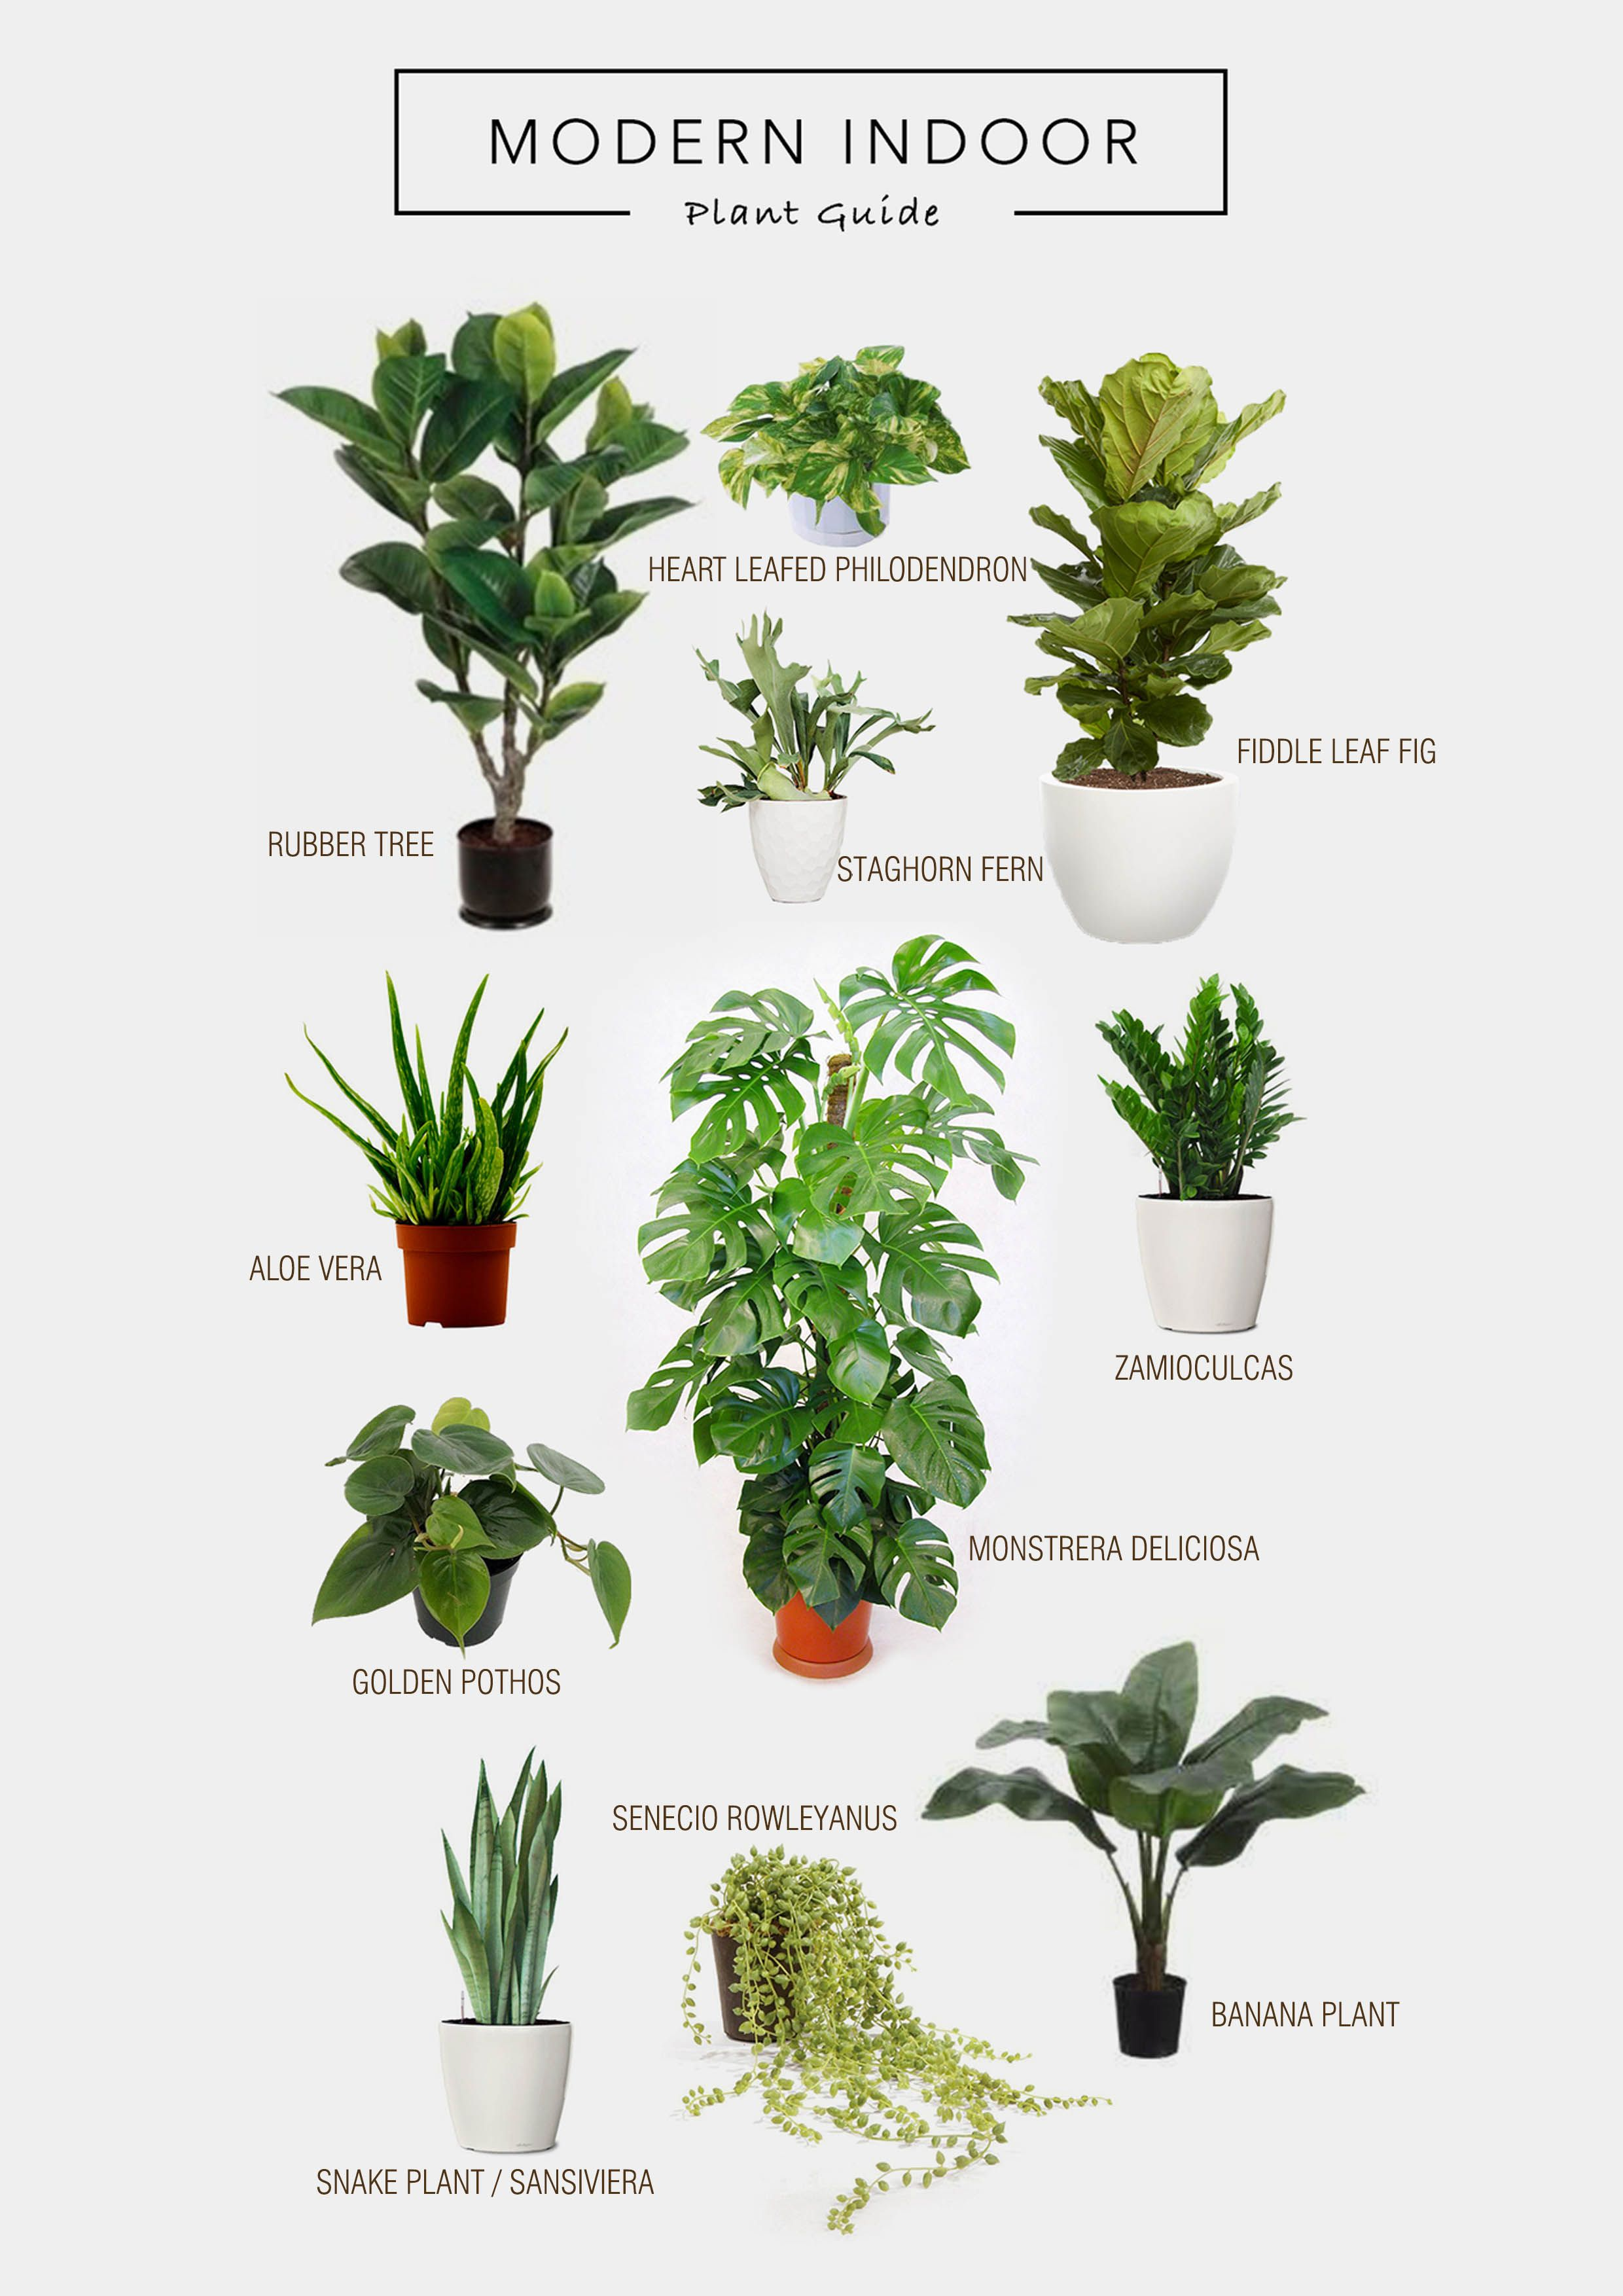 Pin by Zoie Jarr on Plants   House plants, Indoor plants ...